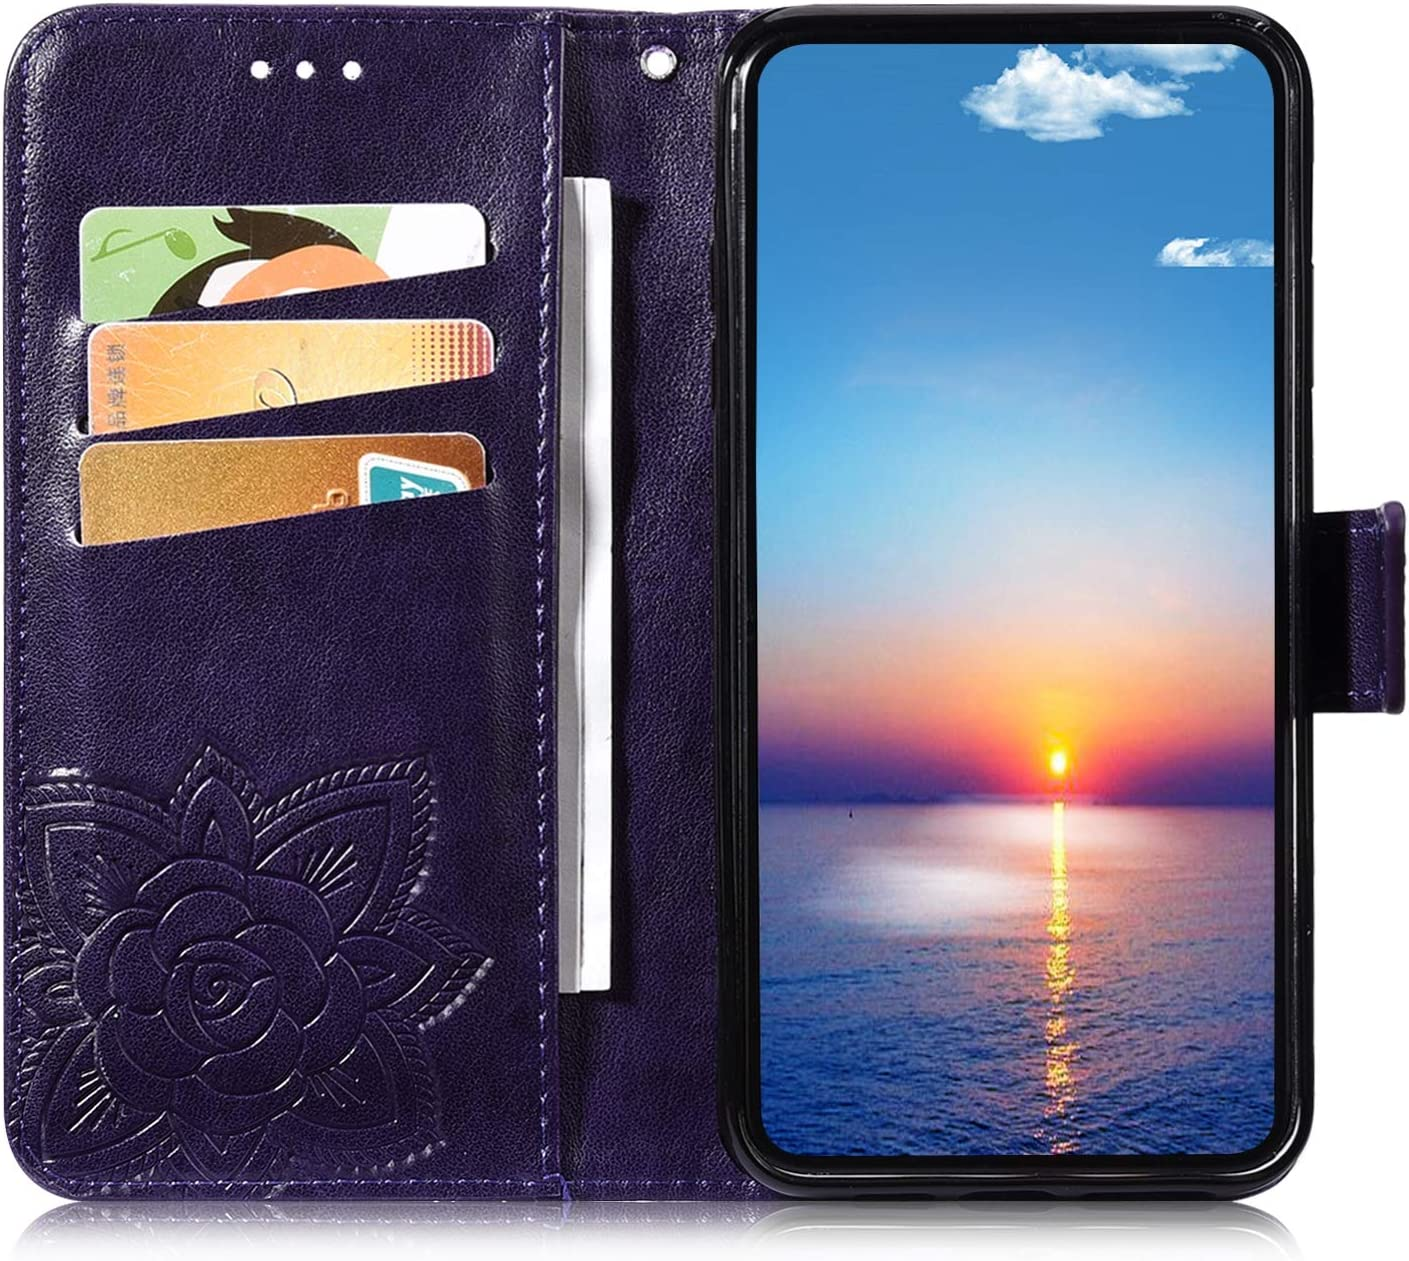 Herbests Compatible with Huawei Mate 20 Wallet Case Leather Flip Cover 3D Pressed Butterfly Flower Pattern Protective Phone Case Shockproof Cover Card Slots Stand Magnetic,Gray